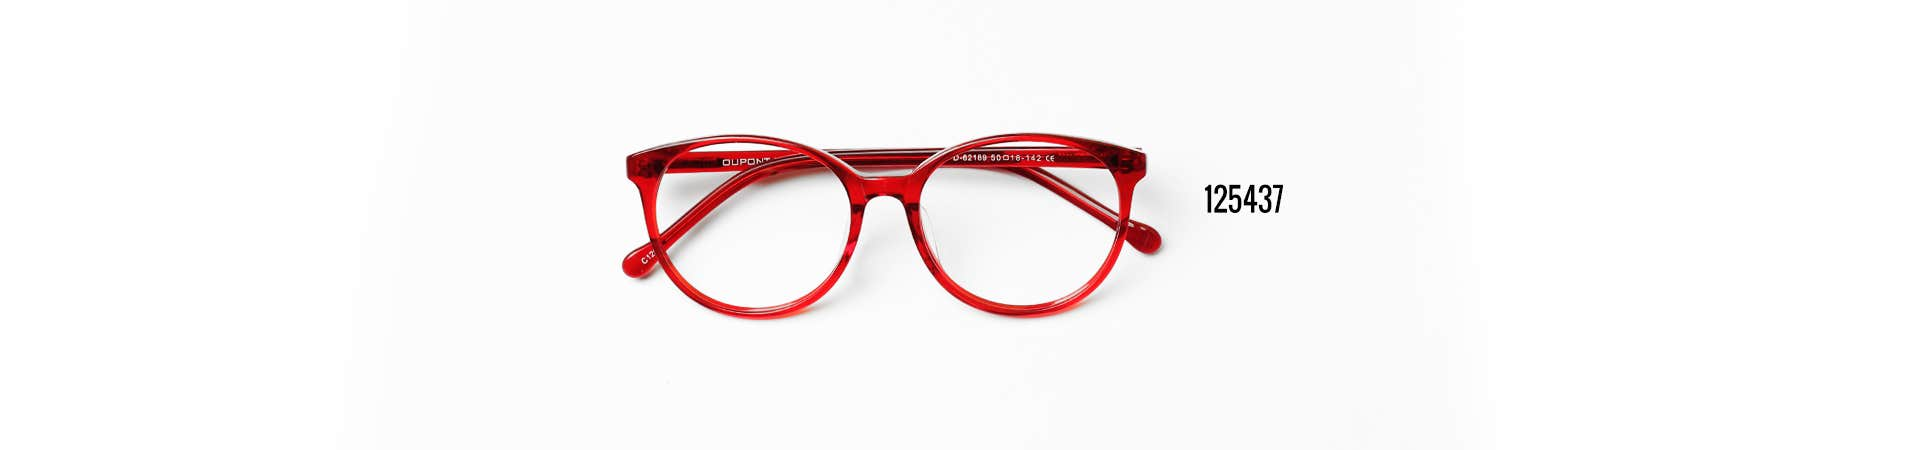 Buy 125347 Red Spring Glasses at Goggles4U UK